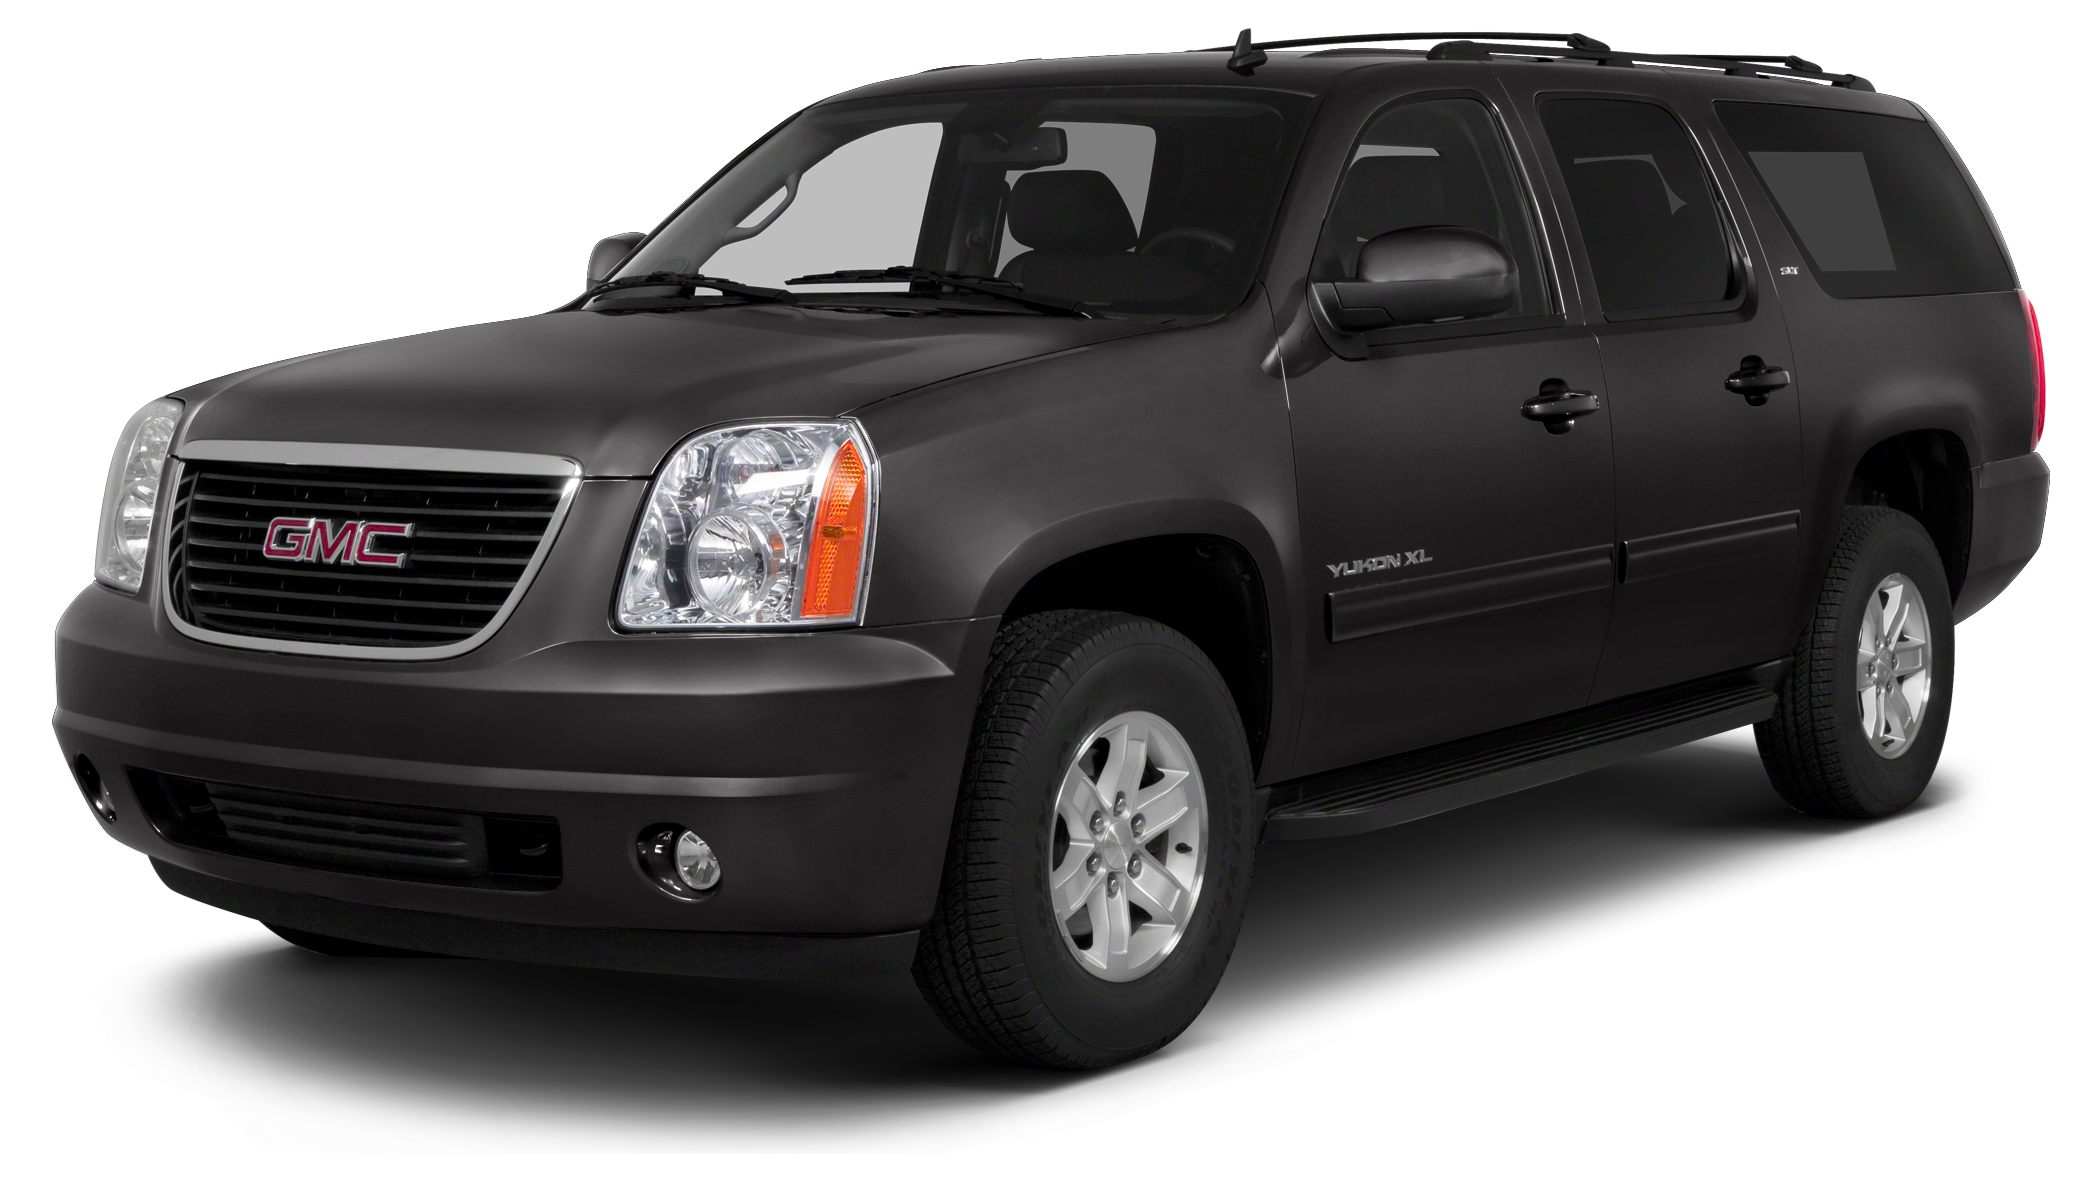 2012 GMC Yukon XL 1500 SLT CARFAX 1-Owner Excellent Condition Leather Third Row Seat Rear Air